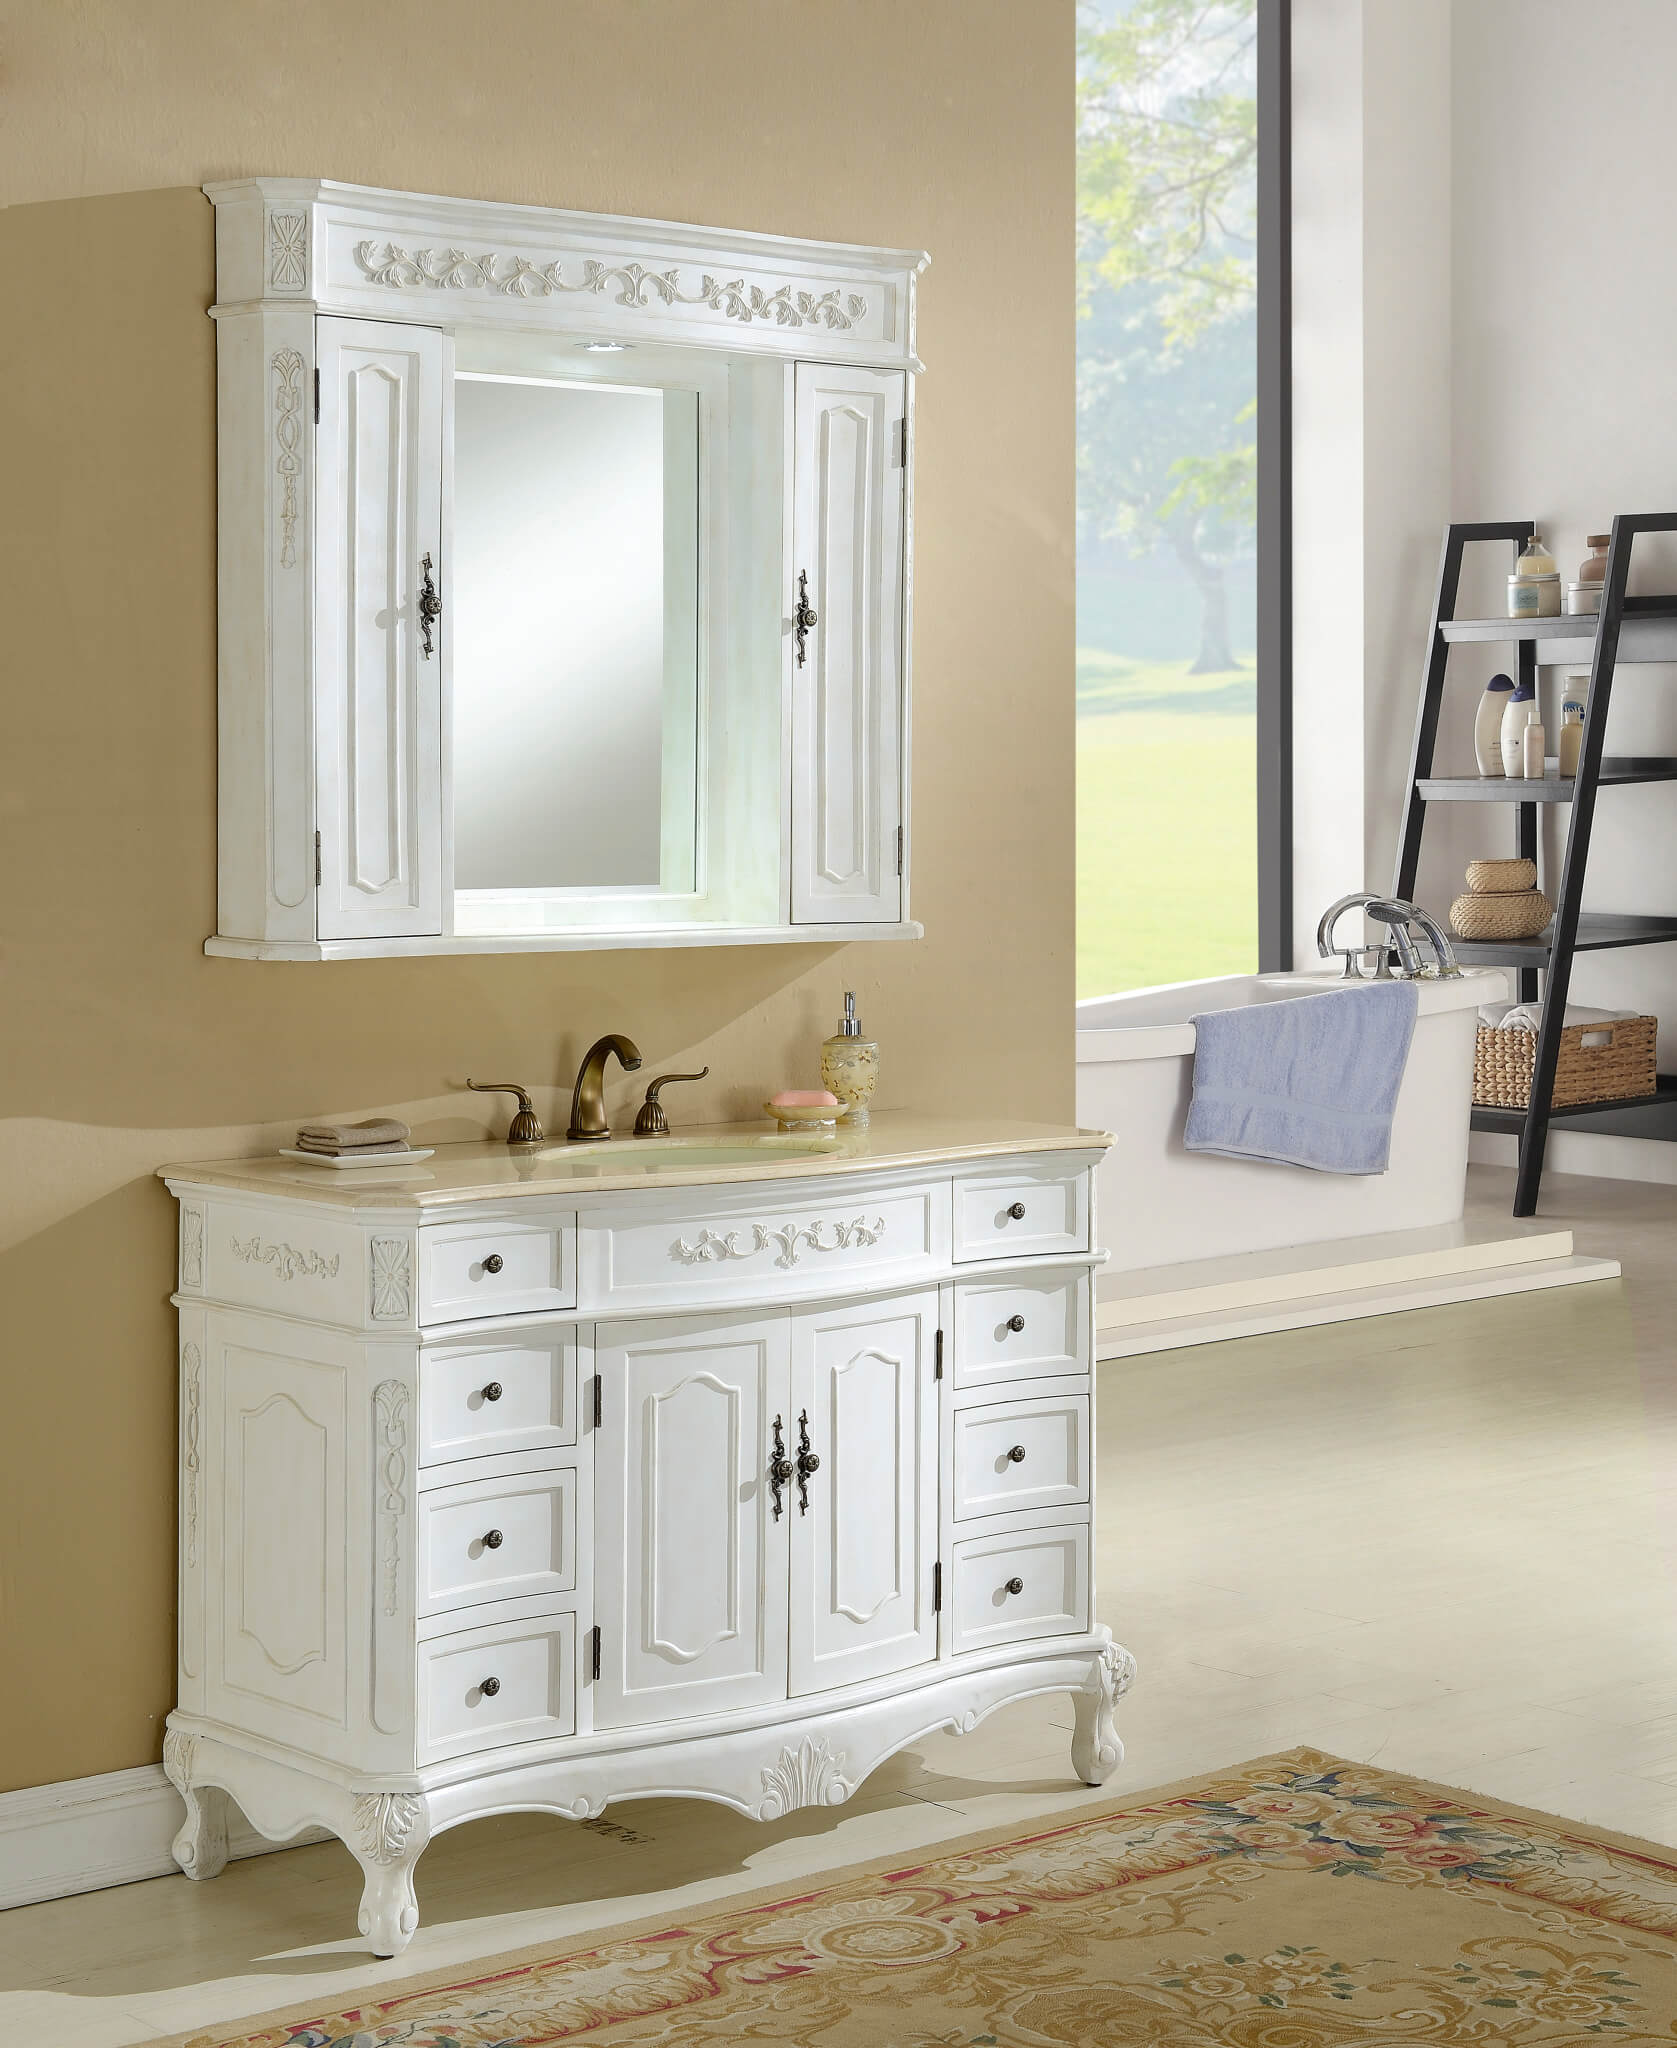 Bathroom Vanities Archives - Antique ReCreations